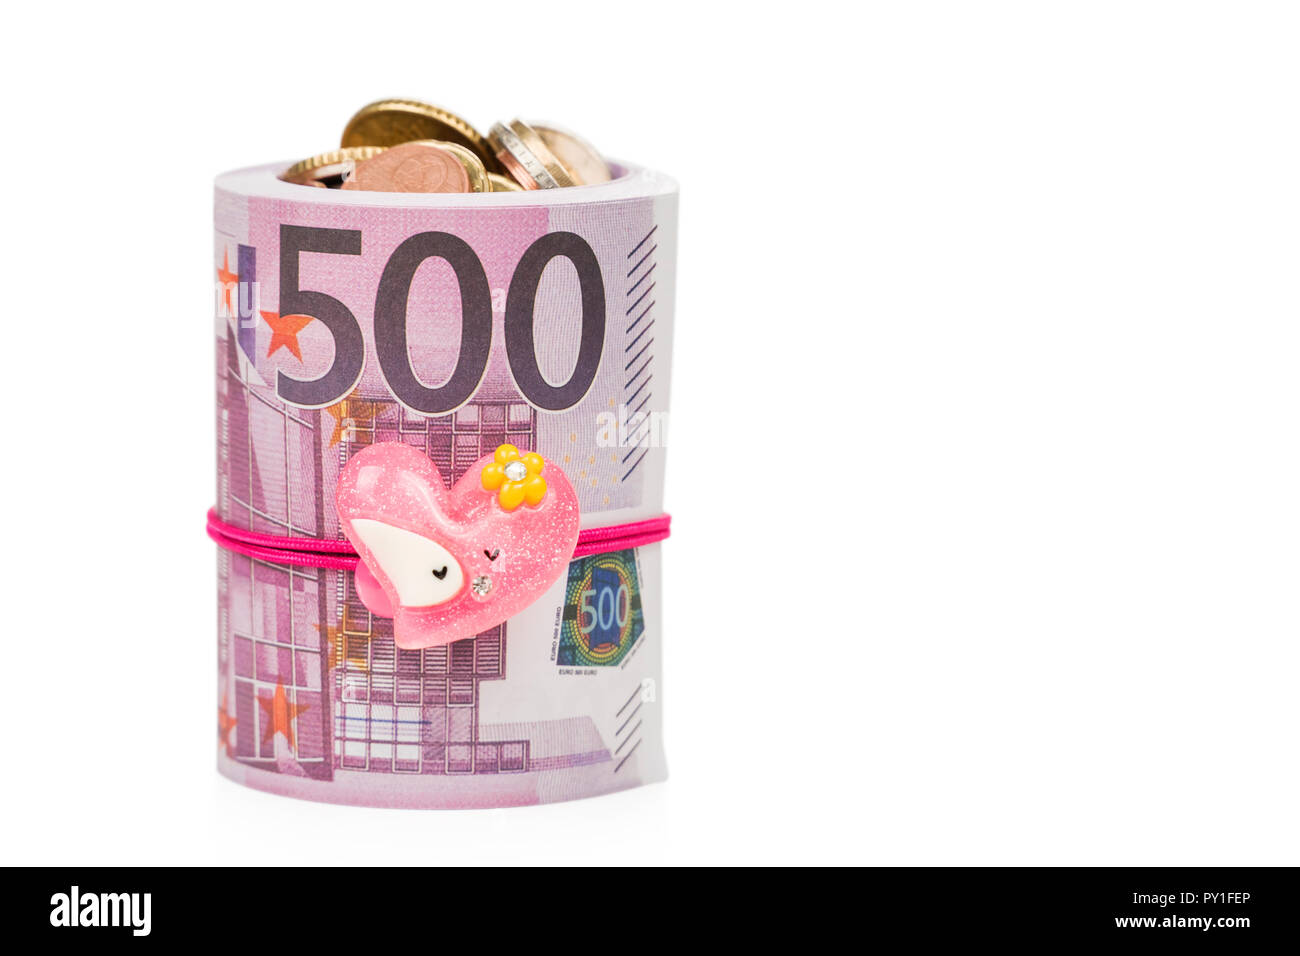 coins in paper money as a gift Stock Photo